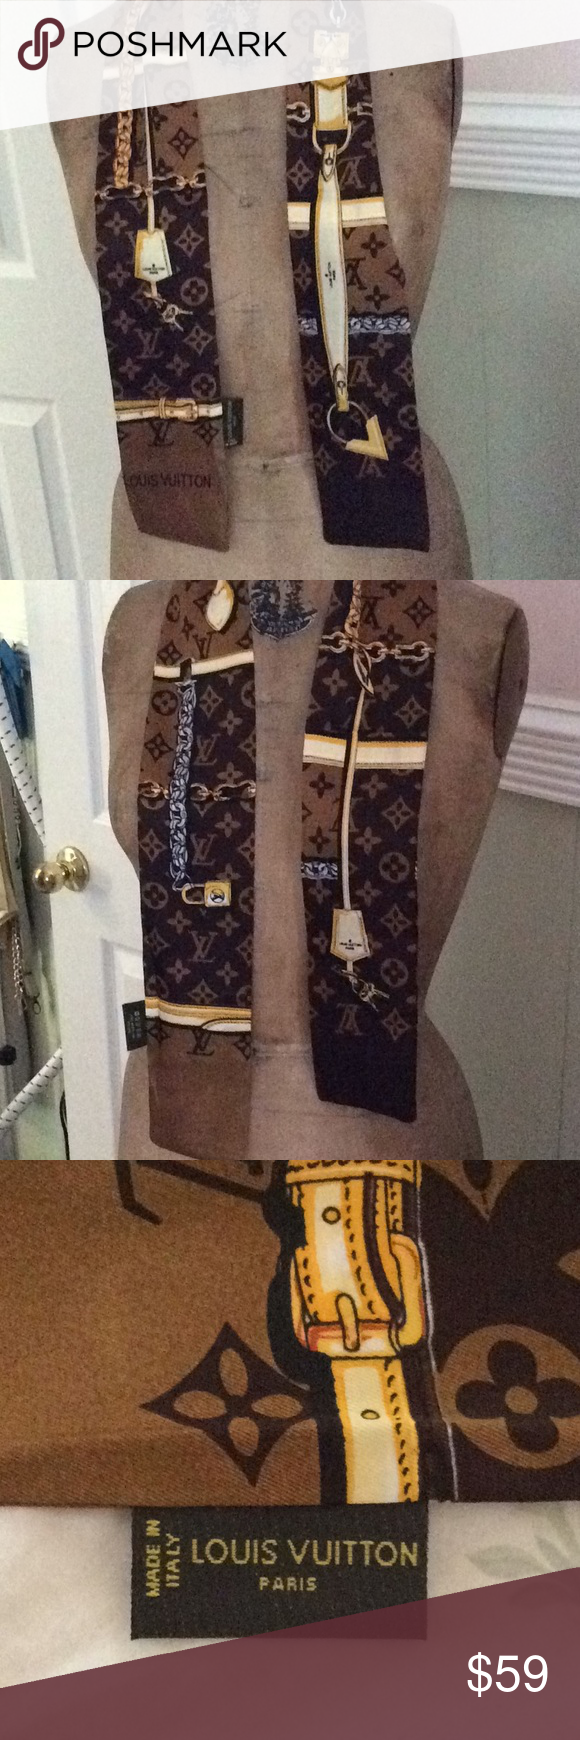 Louis Vuitton brown twilly bandana scarf used More loot